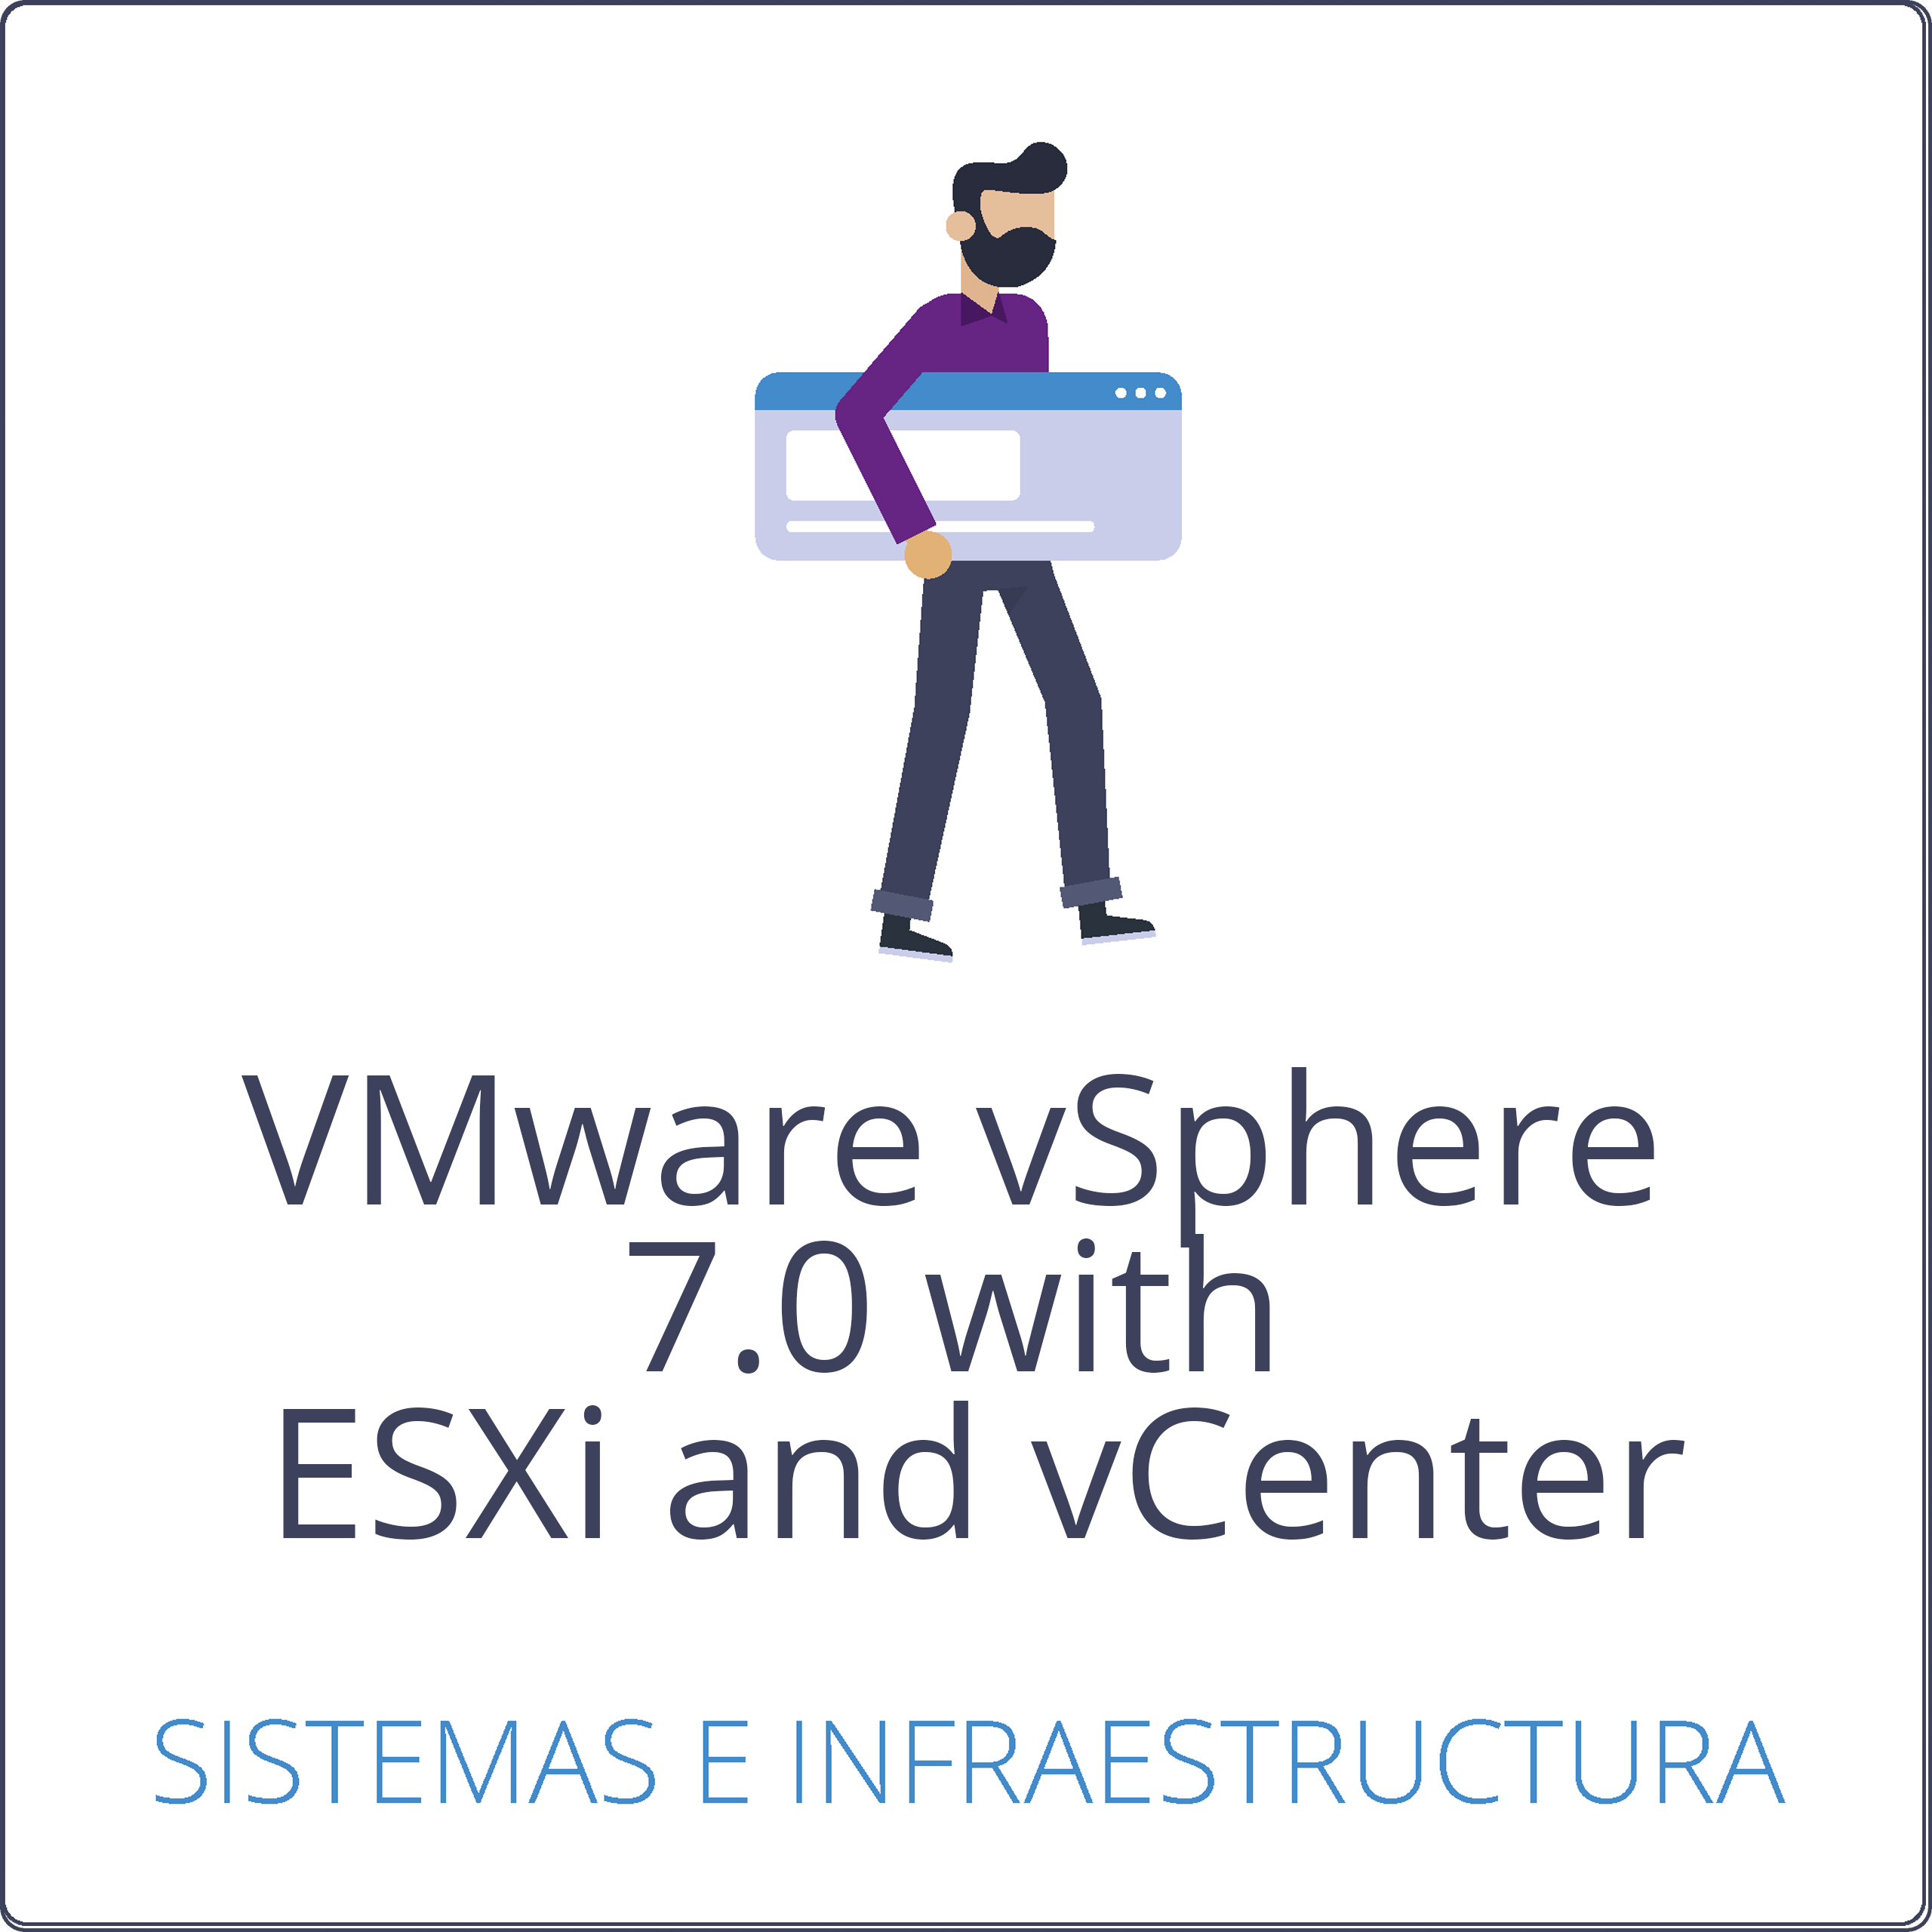 VMware vSphere 7.0 with ESXi and vCenter